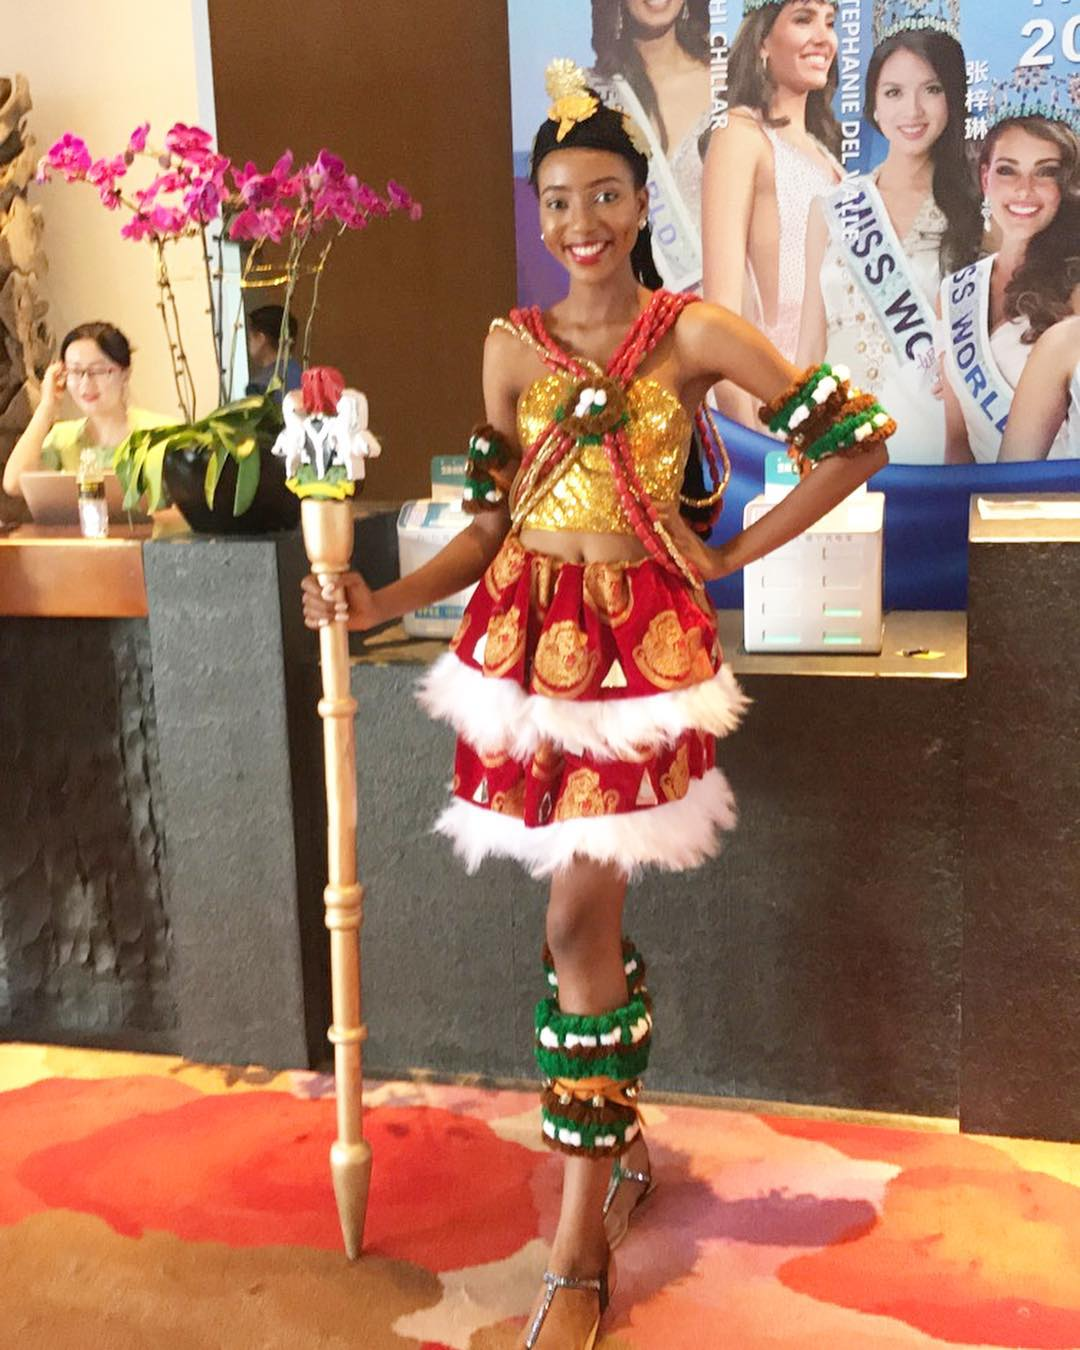 #MissWorld2018: Anita Ukah is showing the Unity & Diversity in Nigeria with Costume for 'Dances of the World Auditions'